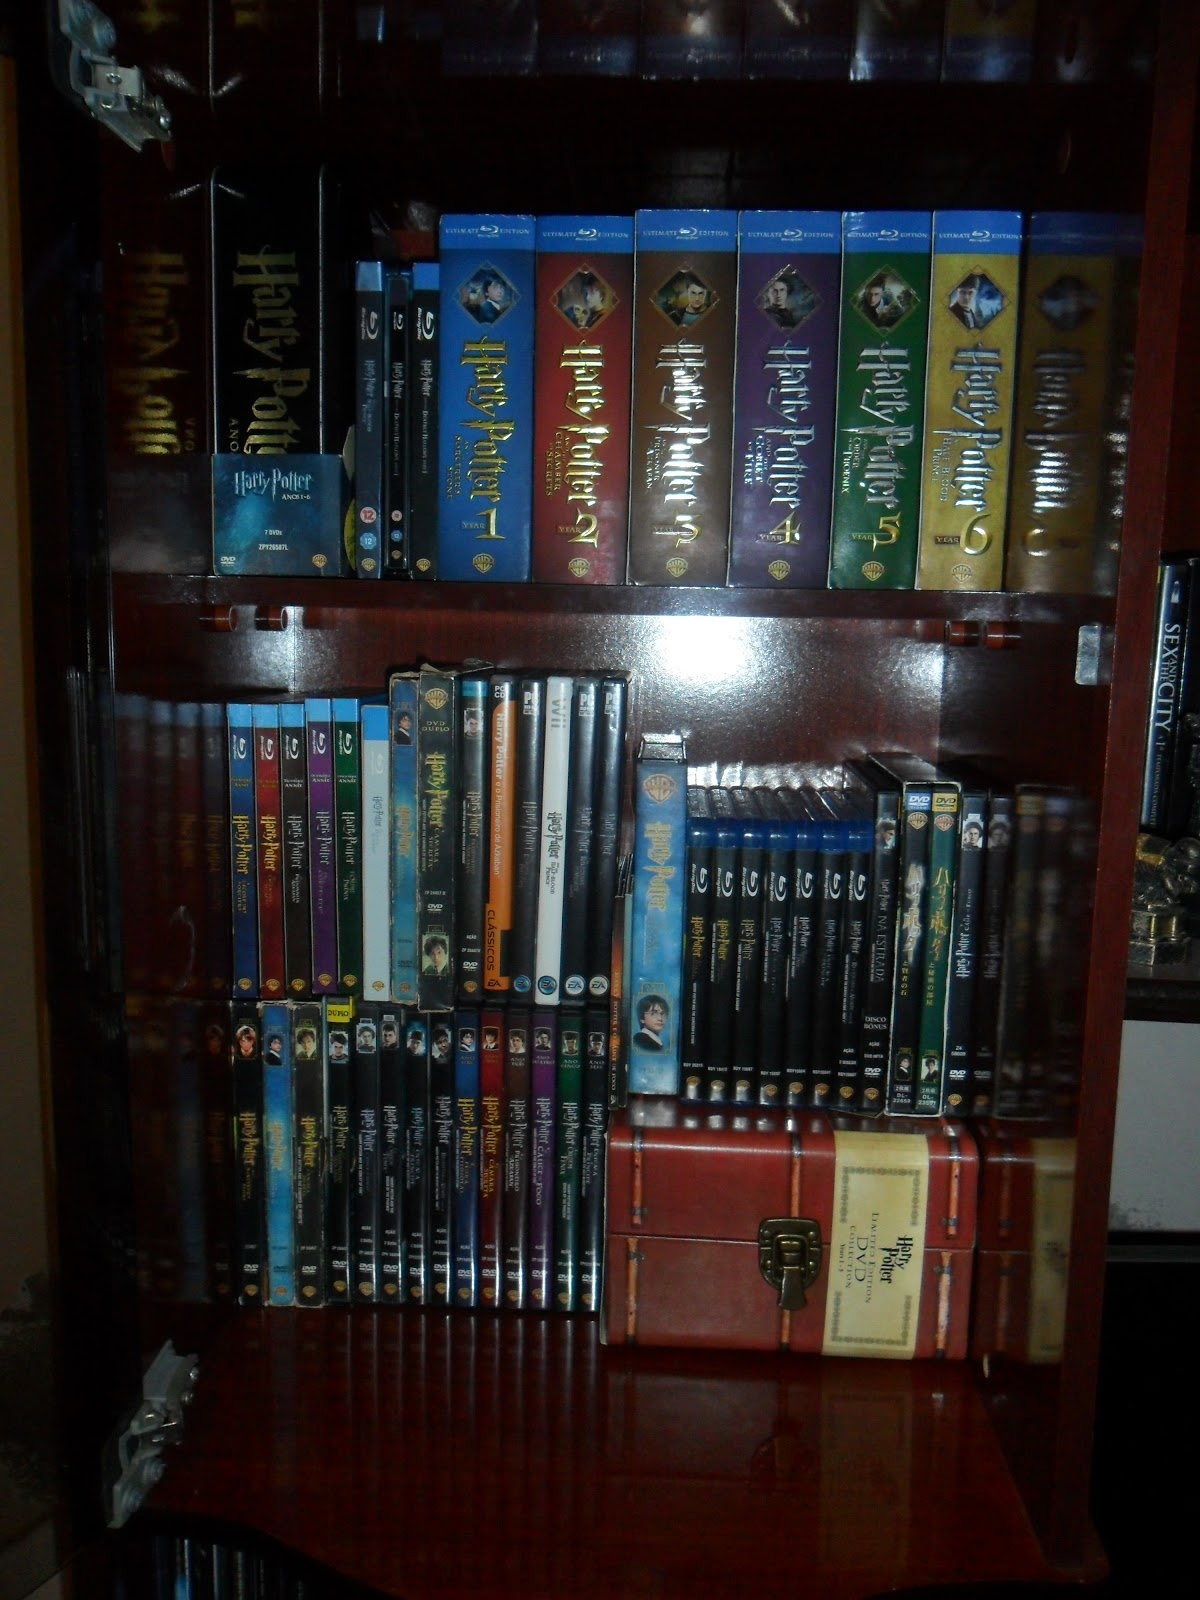 http://1.bp.blogspot.com/-8DWX1nweqkI/Tj7m4I0JpJI/AAAAAAAABVY/QildHROtJt4/s1600/Harry+Potter+DVD+Blu-Ray+Collection.jpg